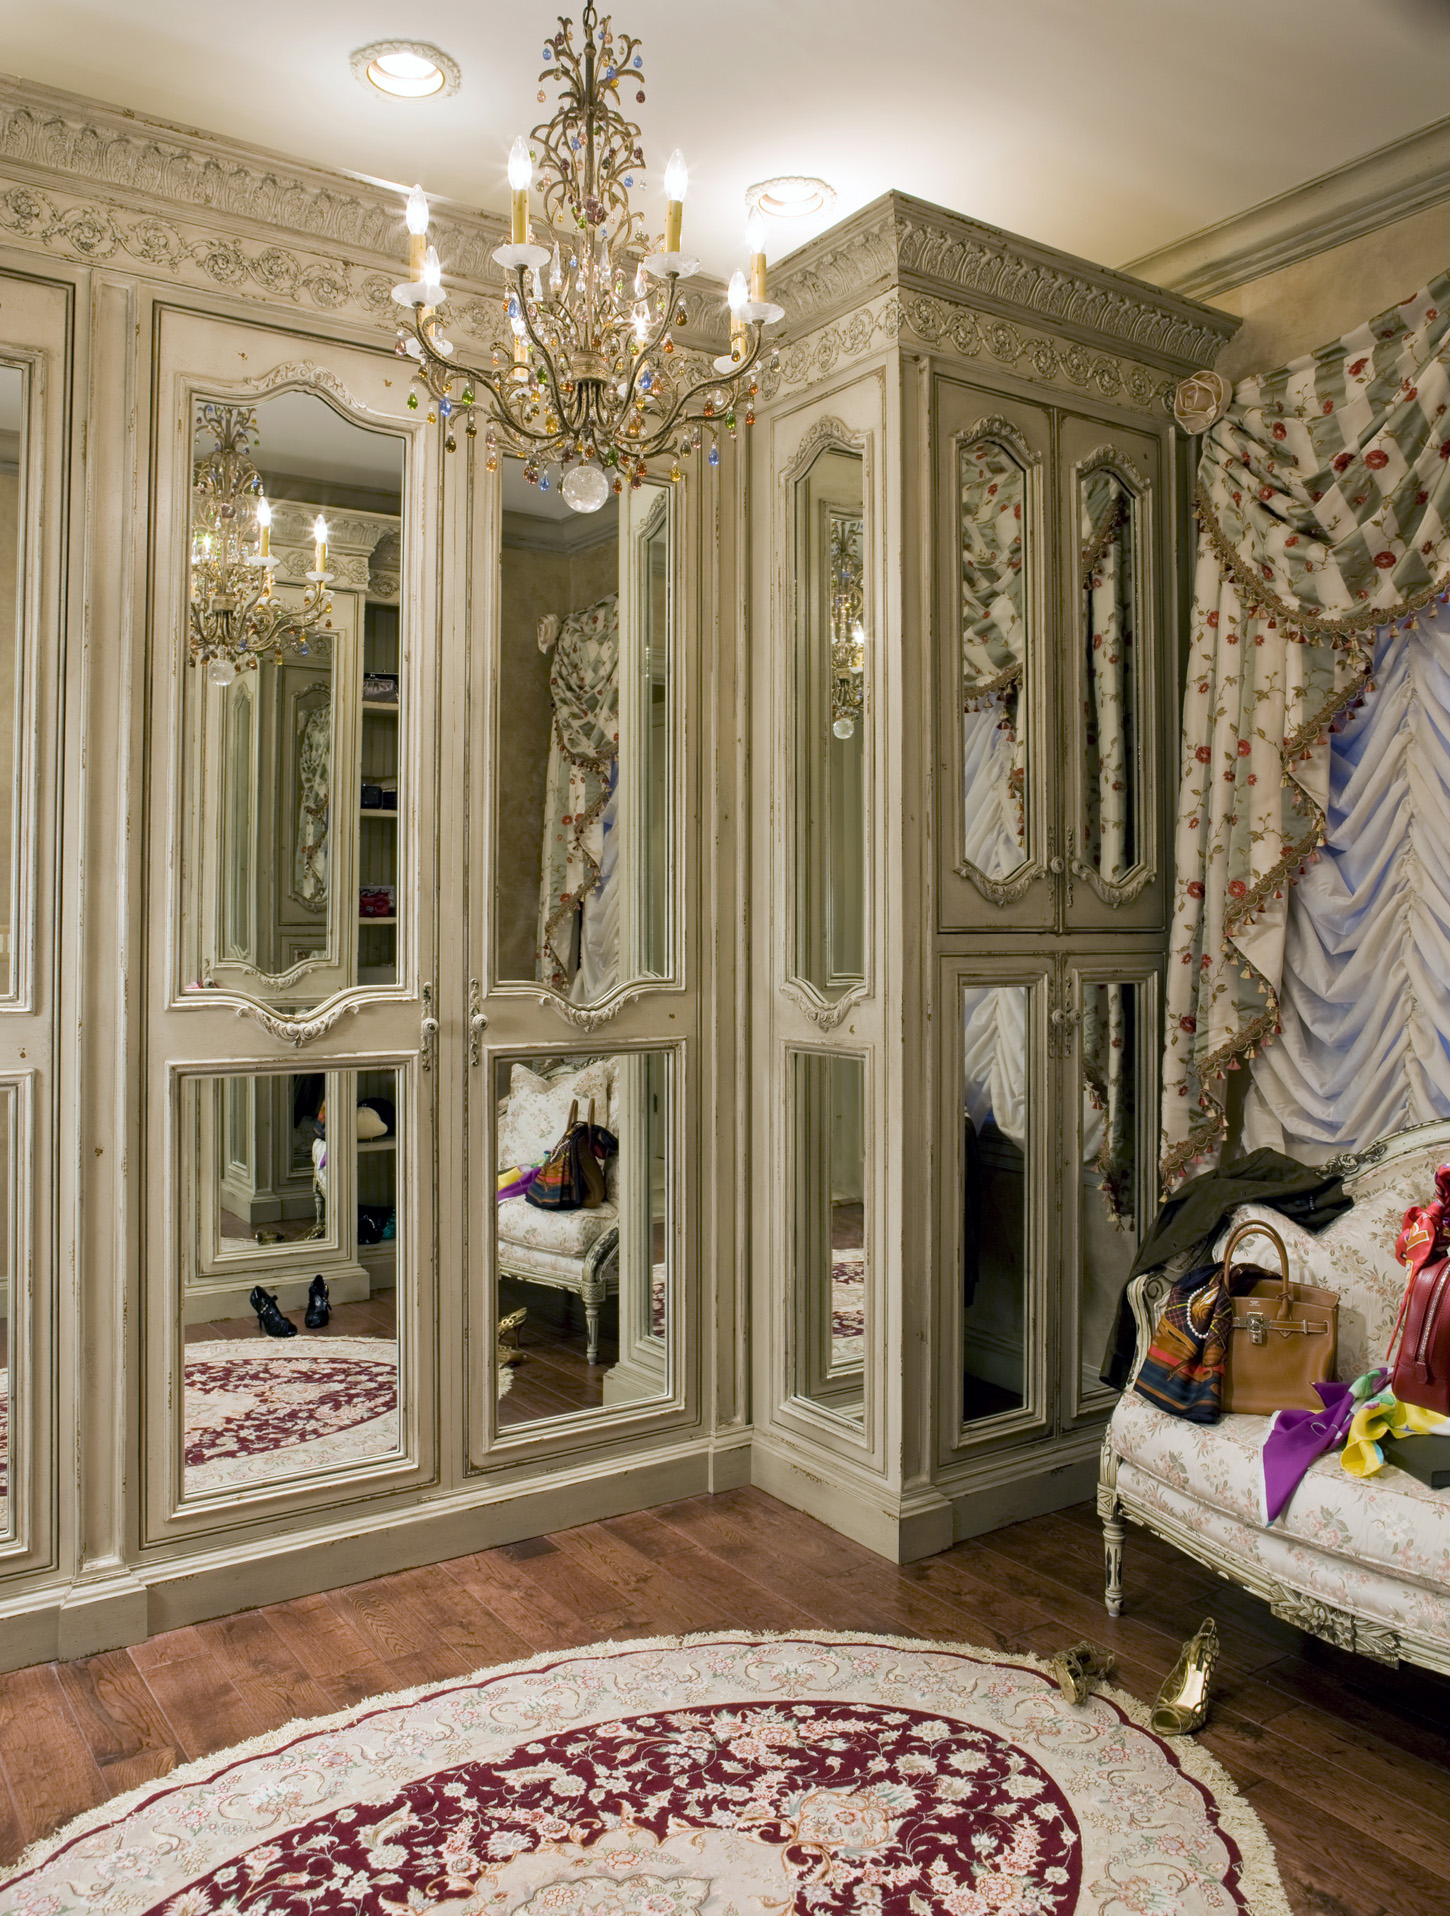 Master closet with antique cabinetry with seating area